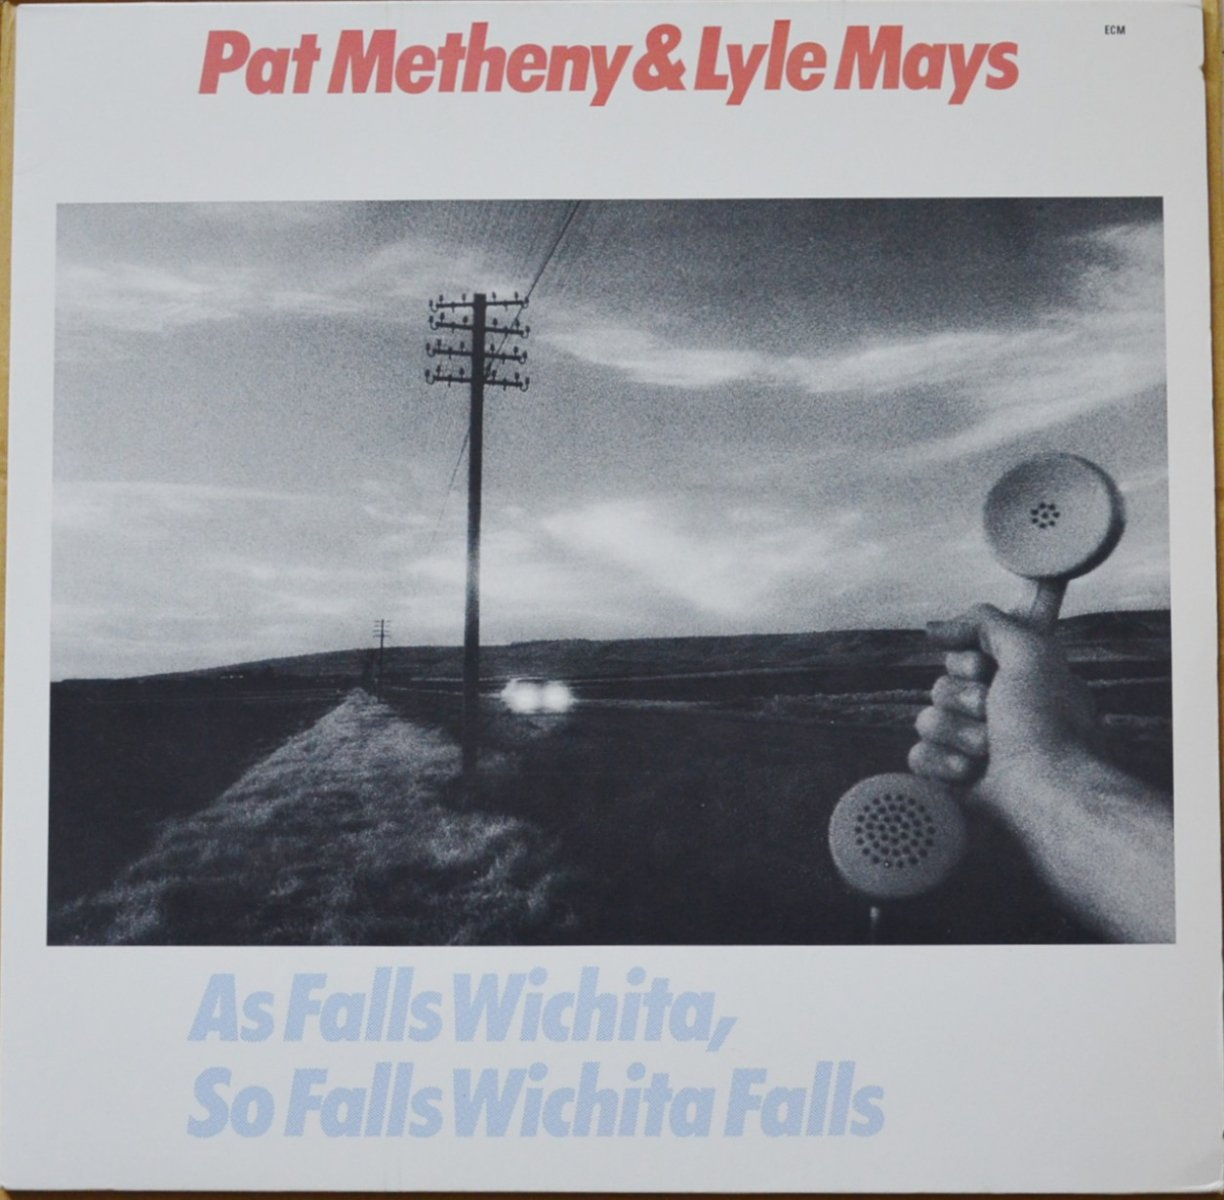 PAT METHENY & LYLE MAYS / AS FALLS WICHITA, SO FALLS WICHITA FALLS (LP)